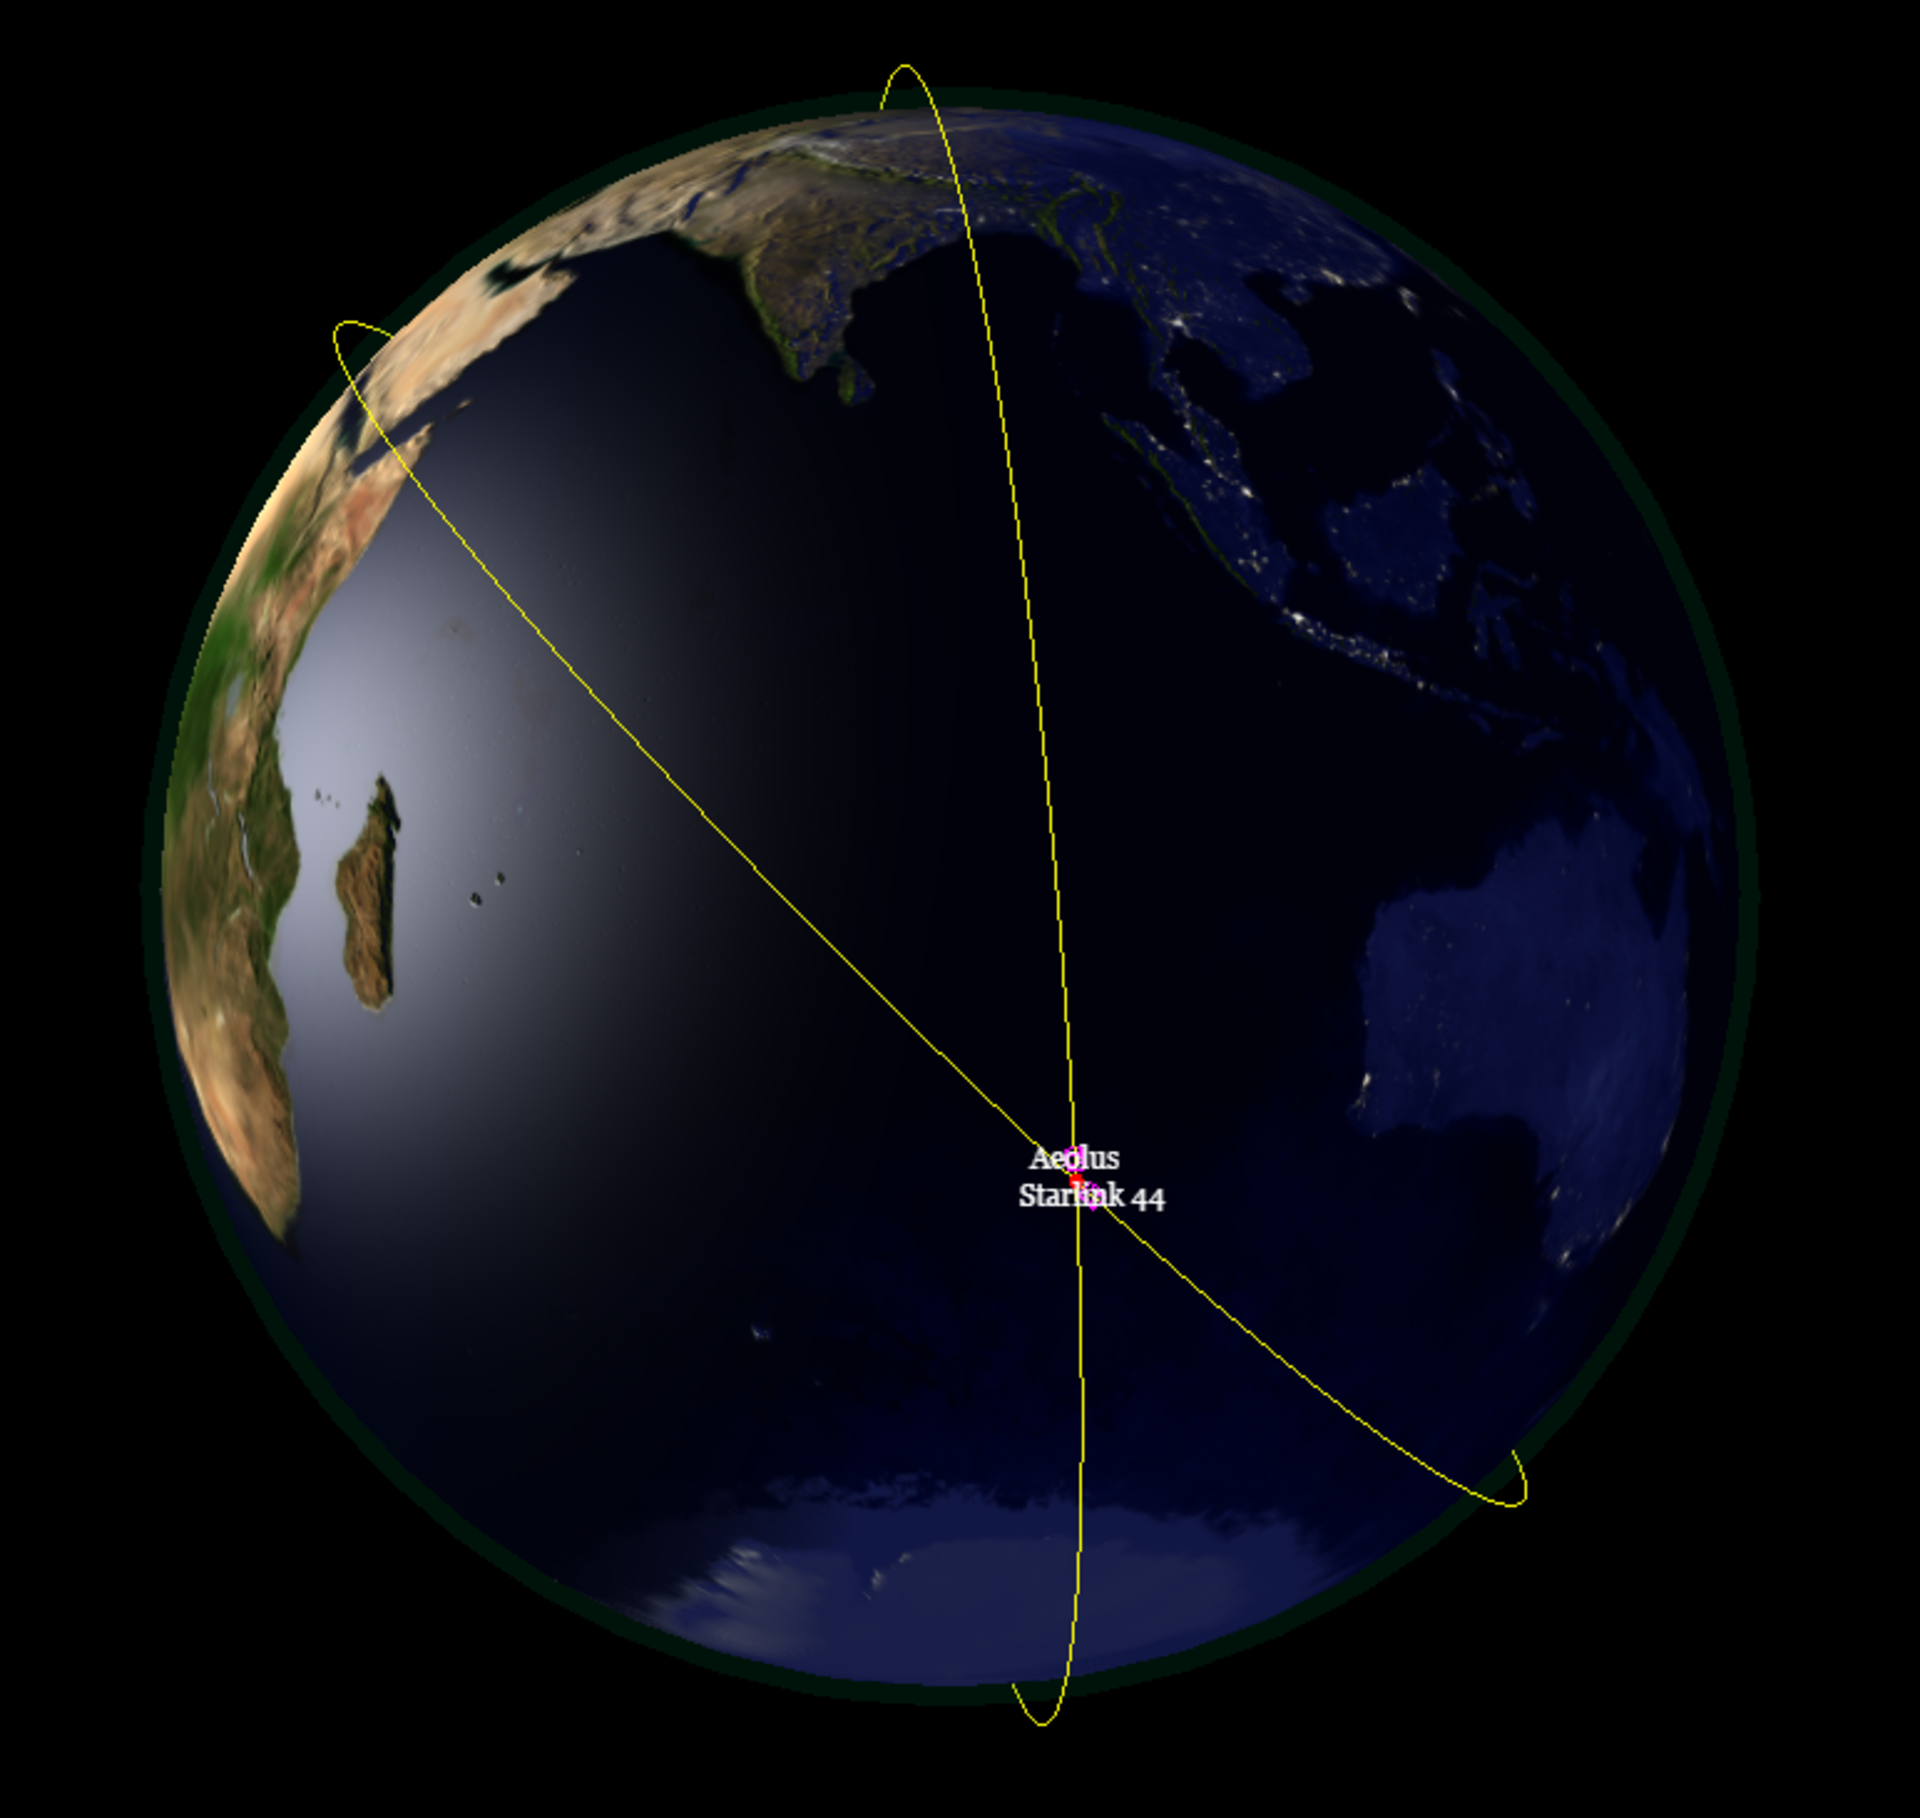 Predicted near miss between Aeolus and Starlink 44